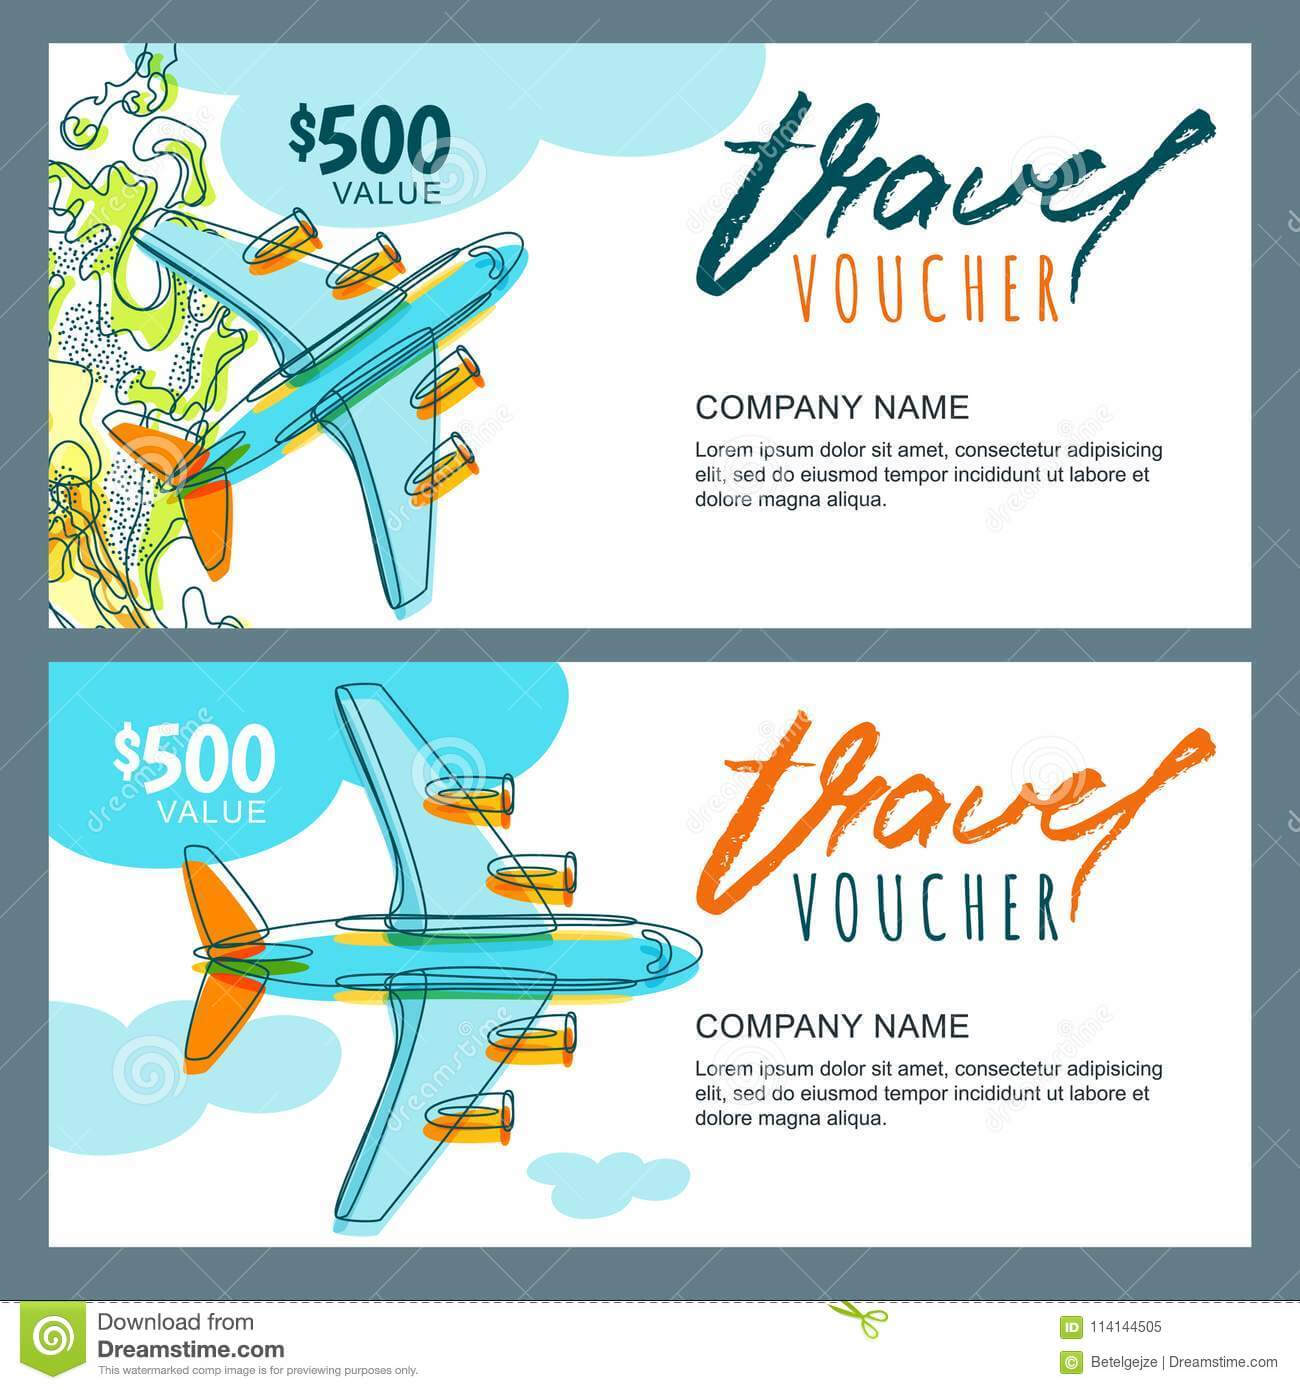 Vector Gift Travel Voucher. Top View Hand Drawn Flying Regarding Free Travel Gift Certificate Template